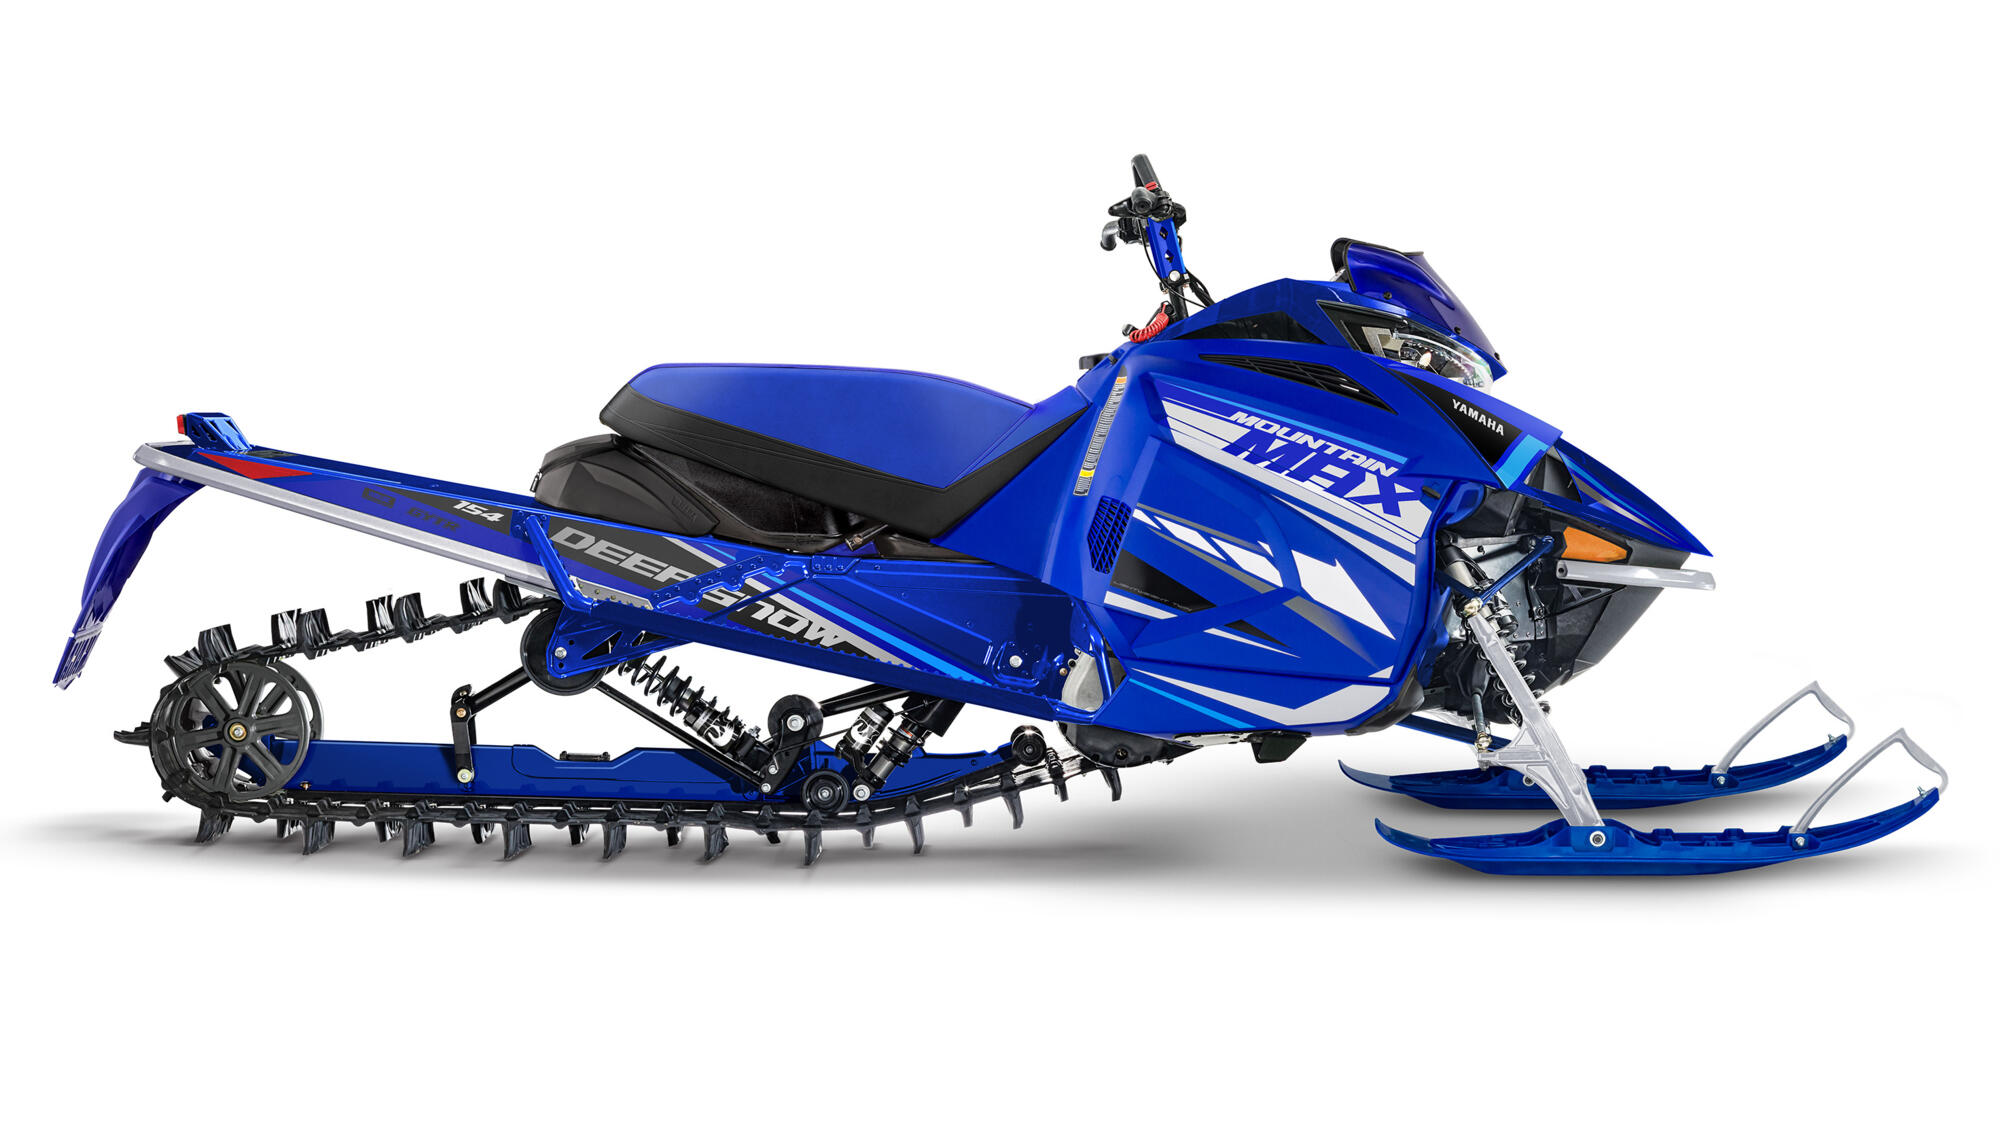 2021-Yamaha-MOUNTAIN-MAX-154-EU-Detail-007-03